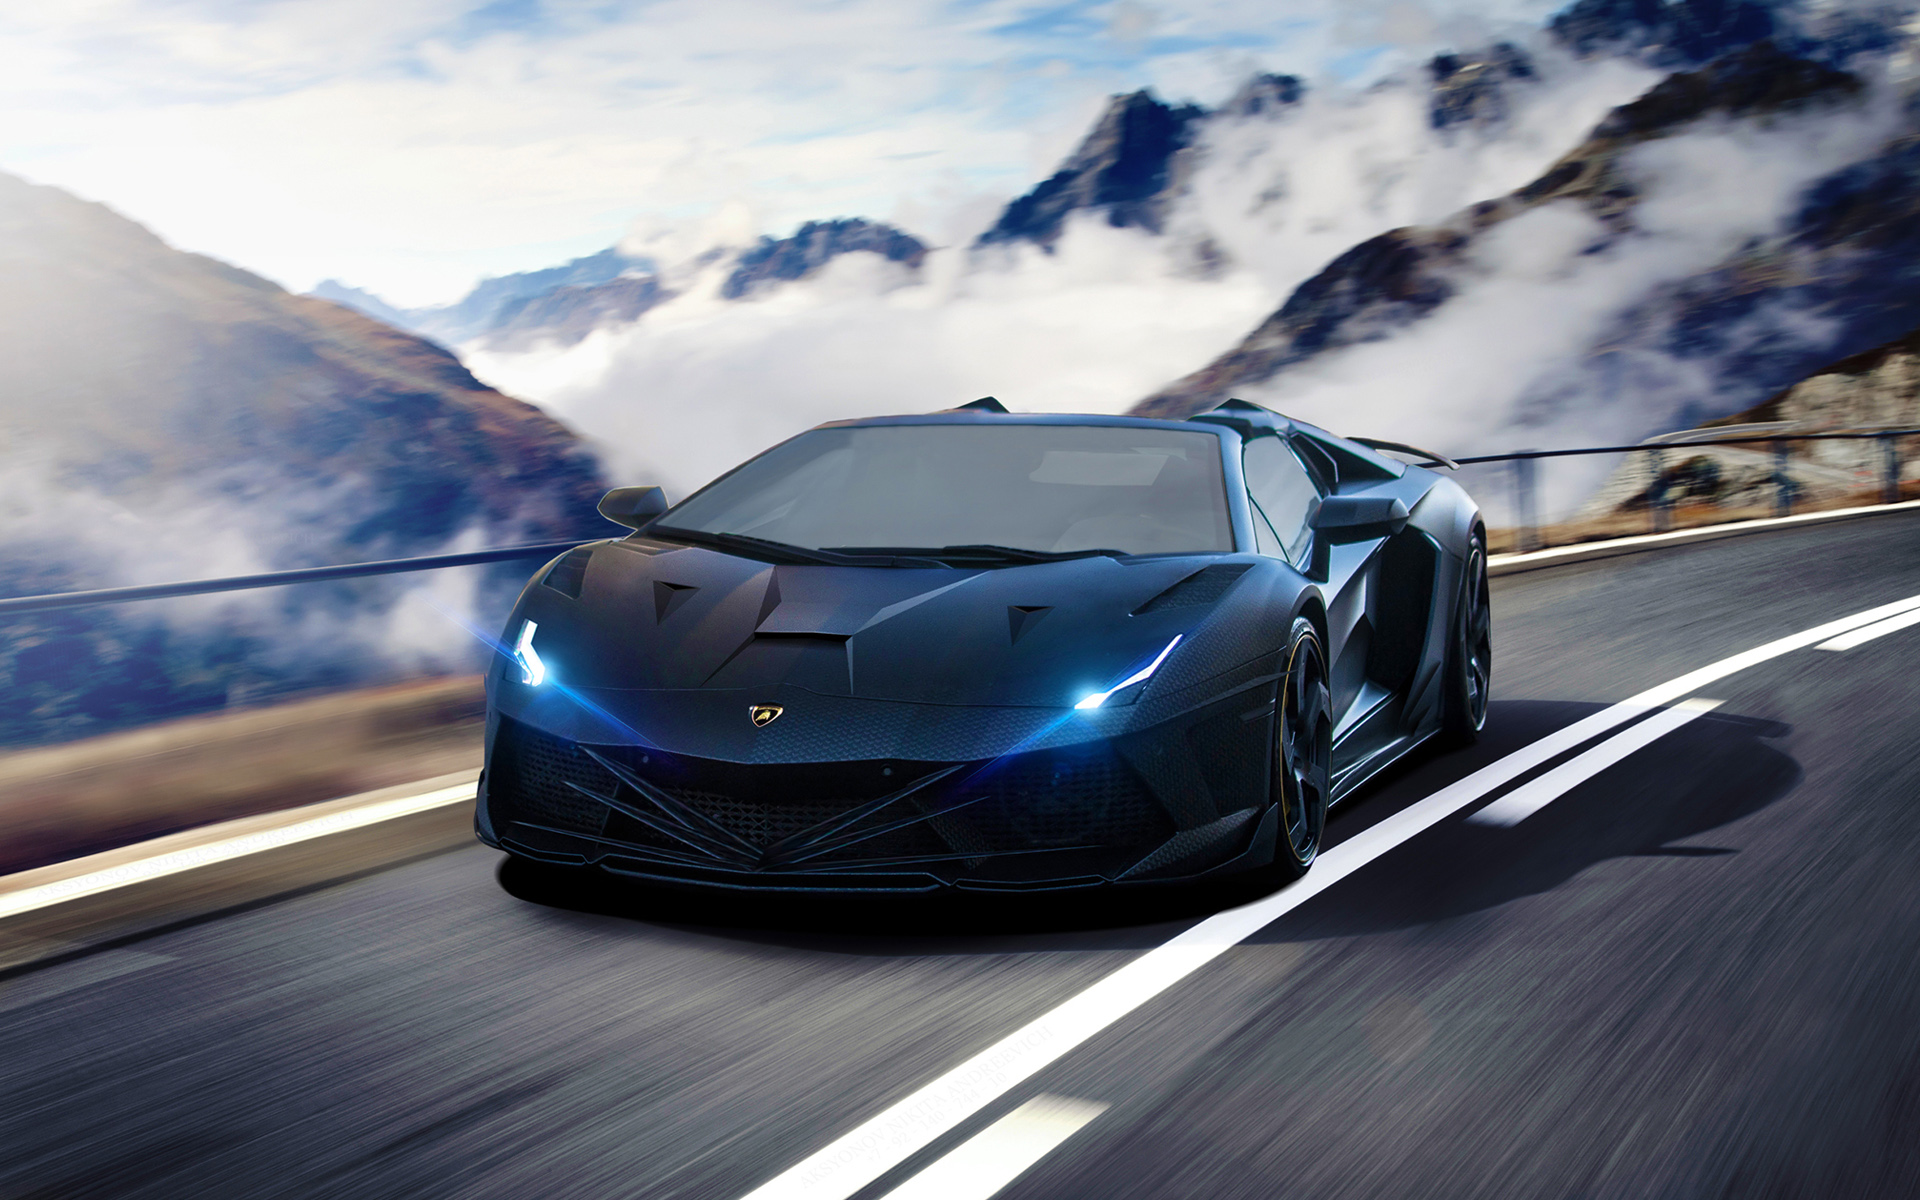 Blue Supercar Hd Wallpaper